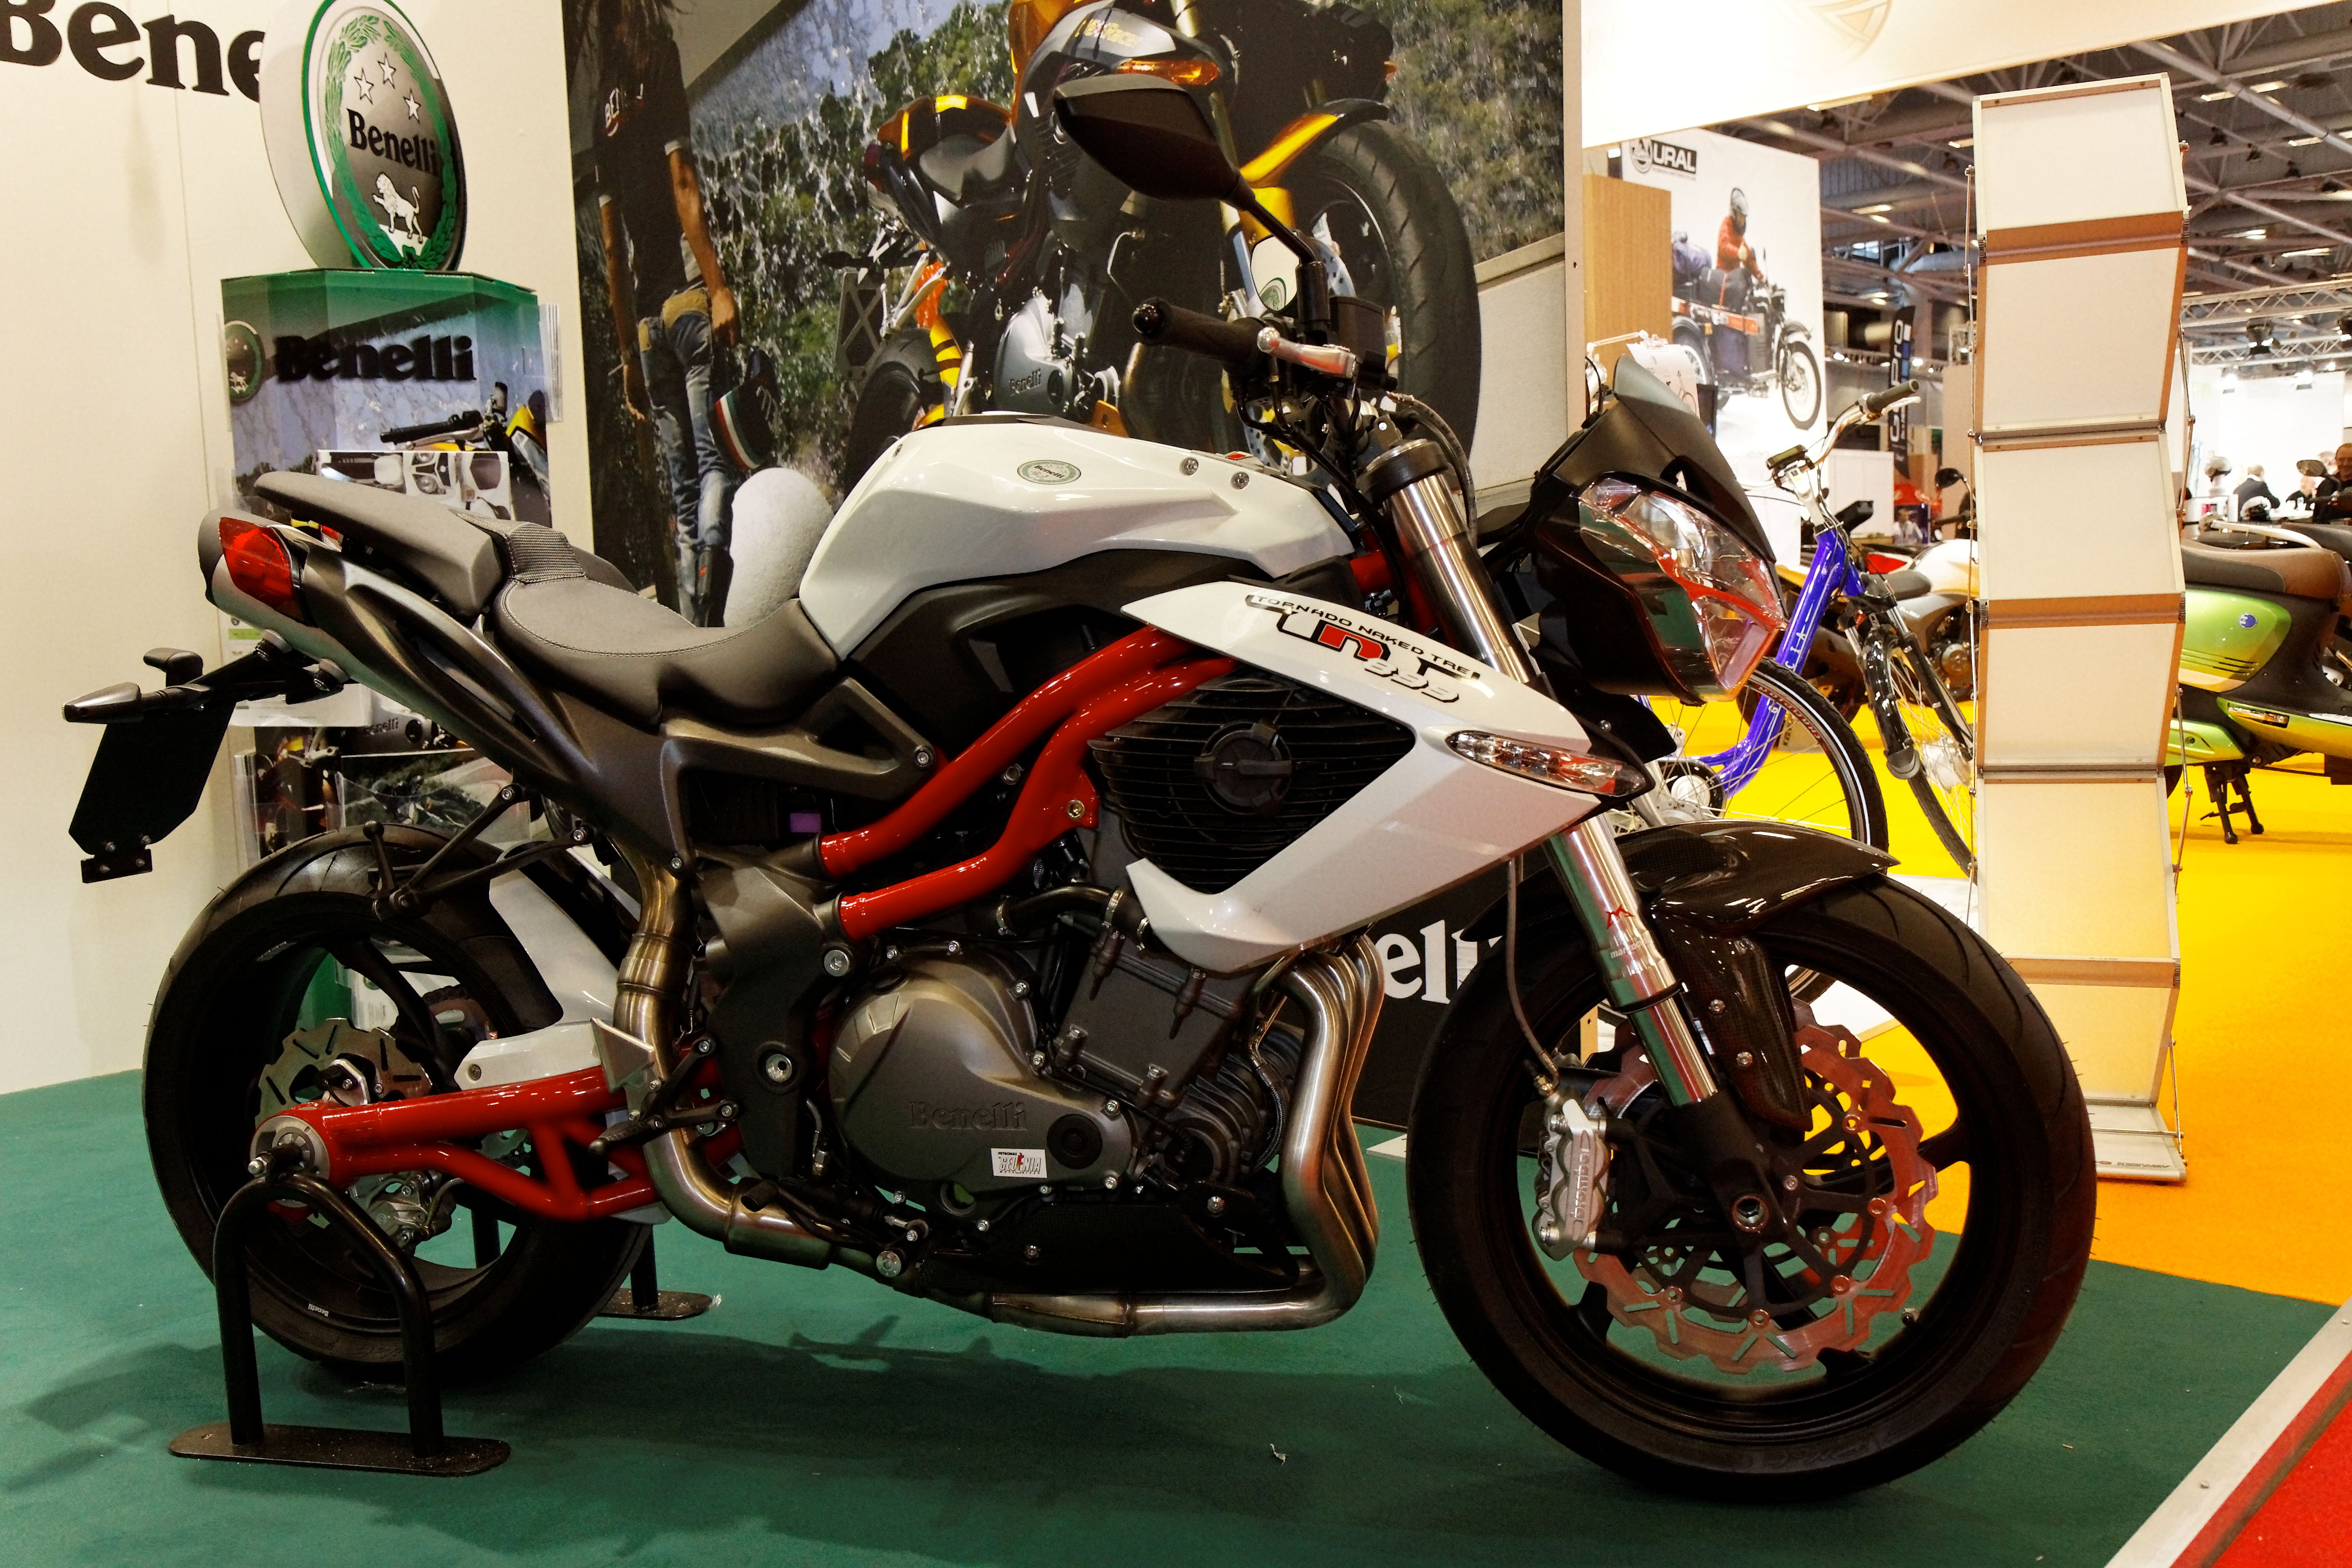 Watch furthermore File Paris   Salon de la moto 2011   Benelli   TNT   004 together with 2014 Peugeot 2008 Allure Diesel Walkaround Video Pictures likewise Tnt 135 likewise 3 Mid 60 70s Ton Up Bikes. on benelli motorcycles